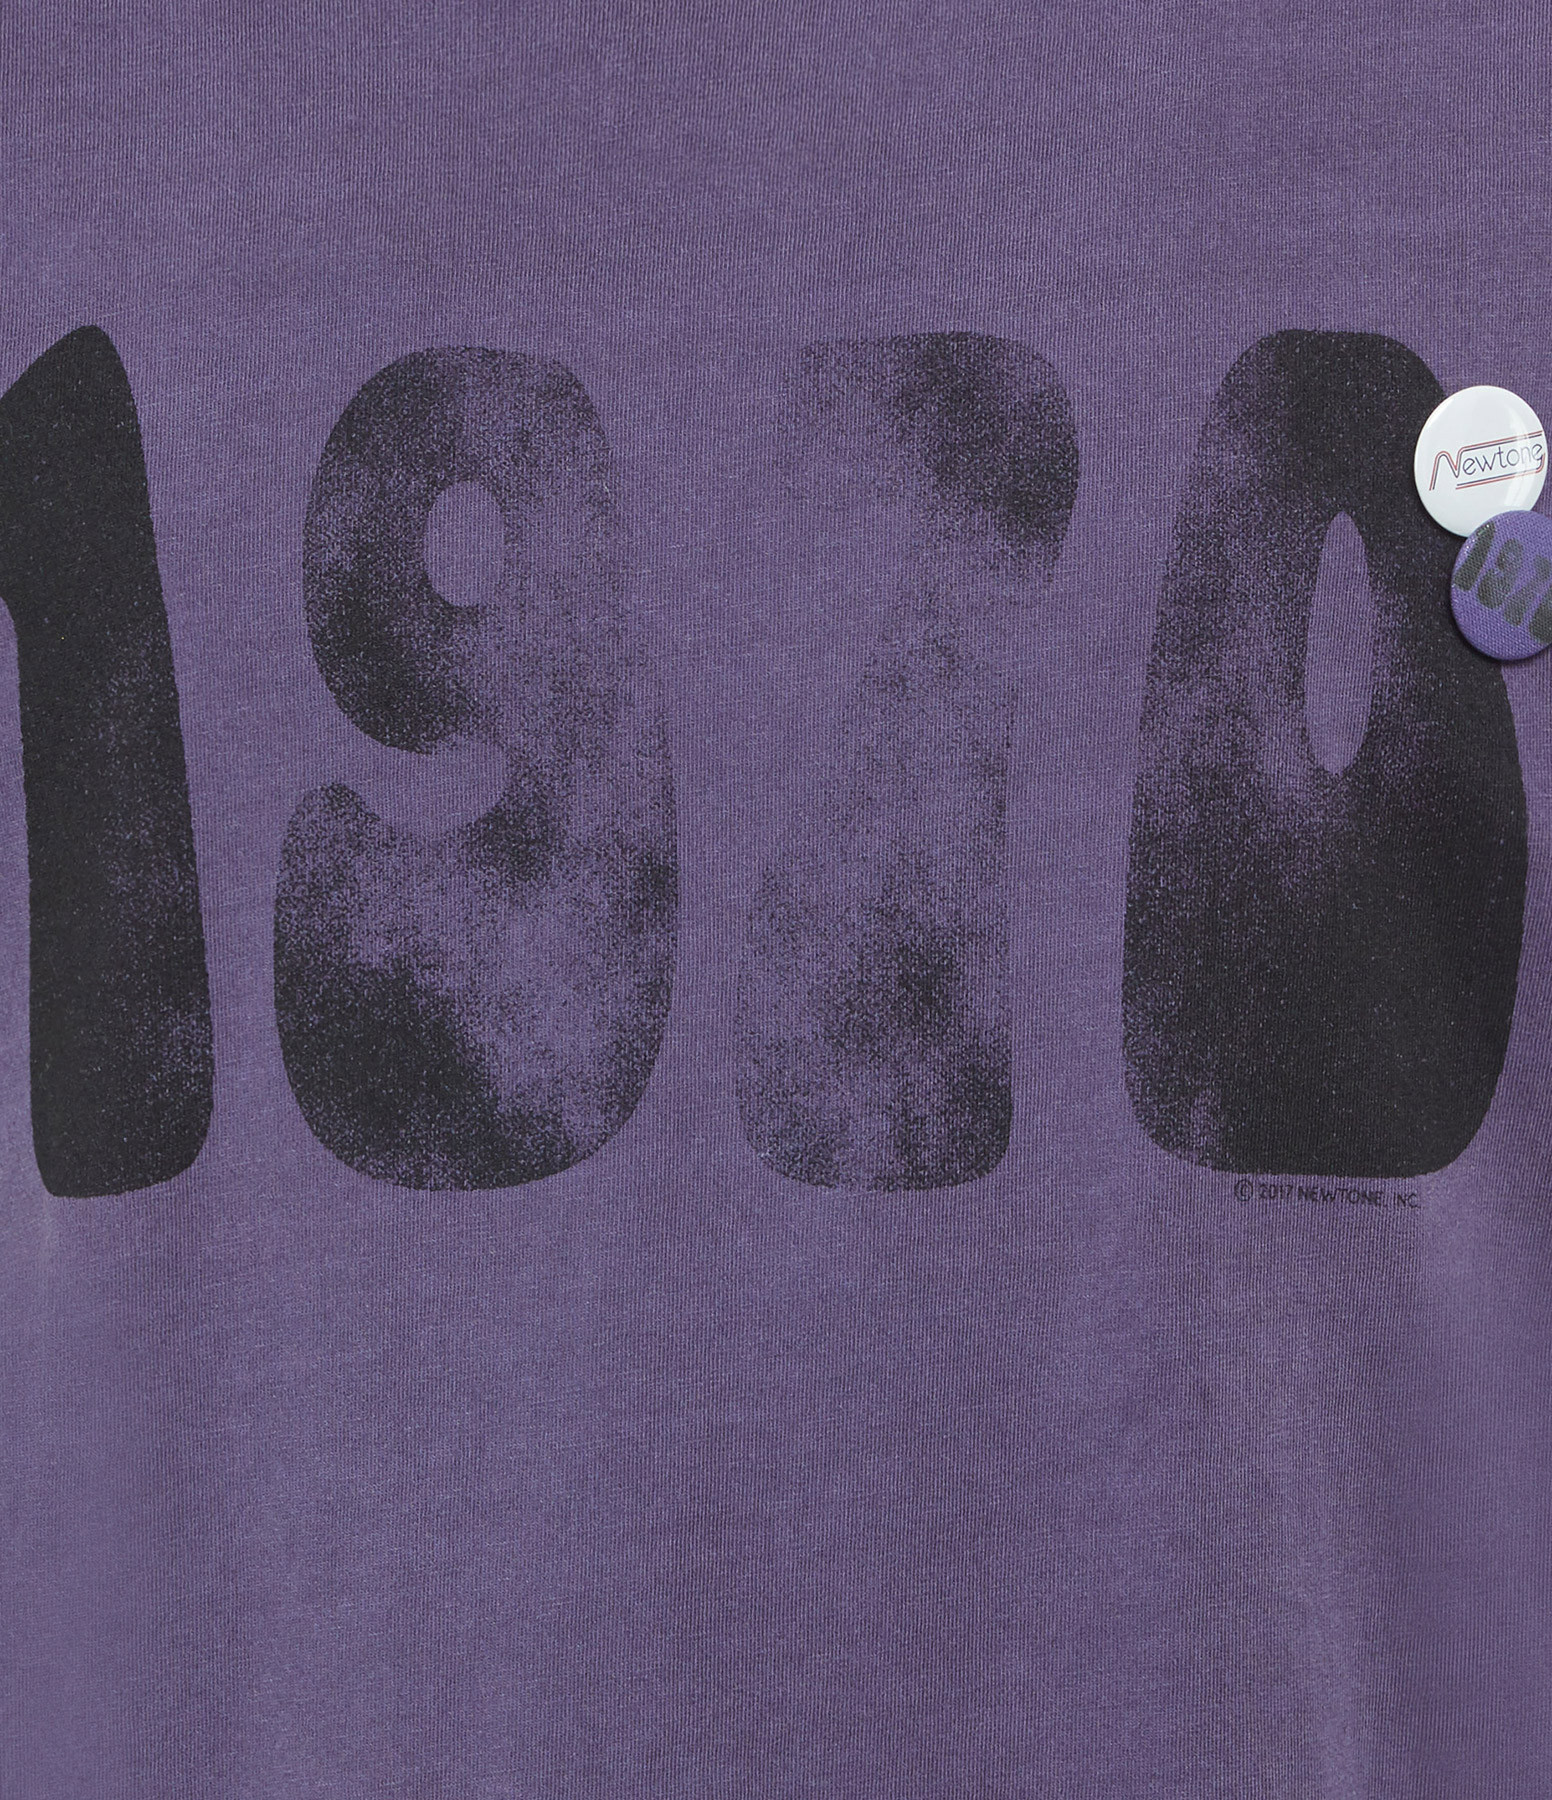 NEWTONE - Tee-shirt 1970 Coton Violet Grappe